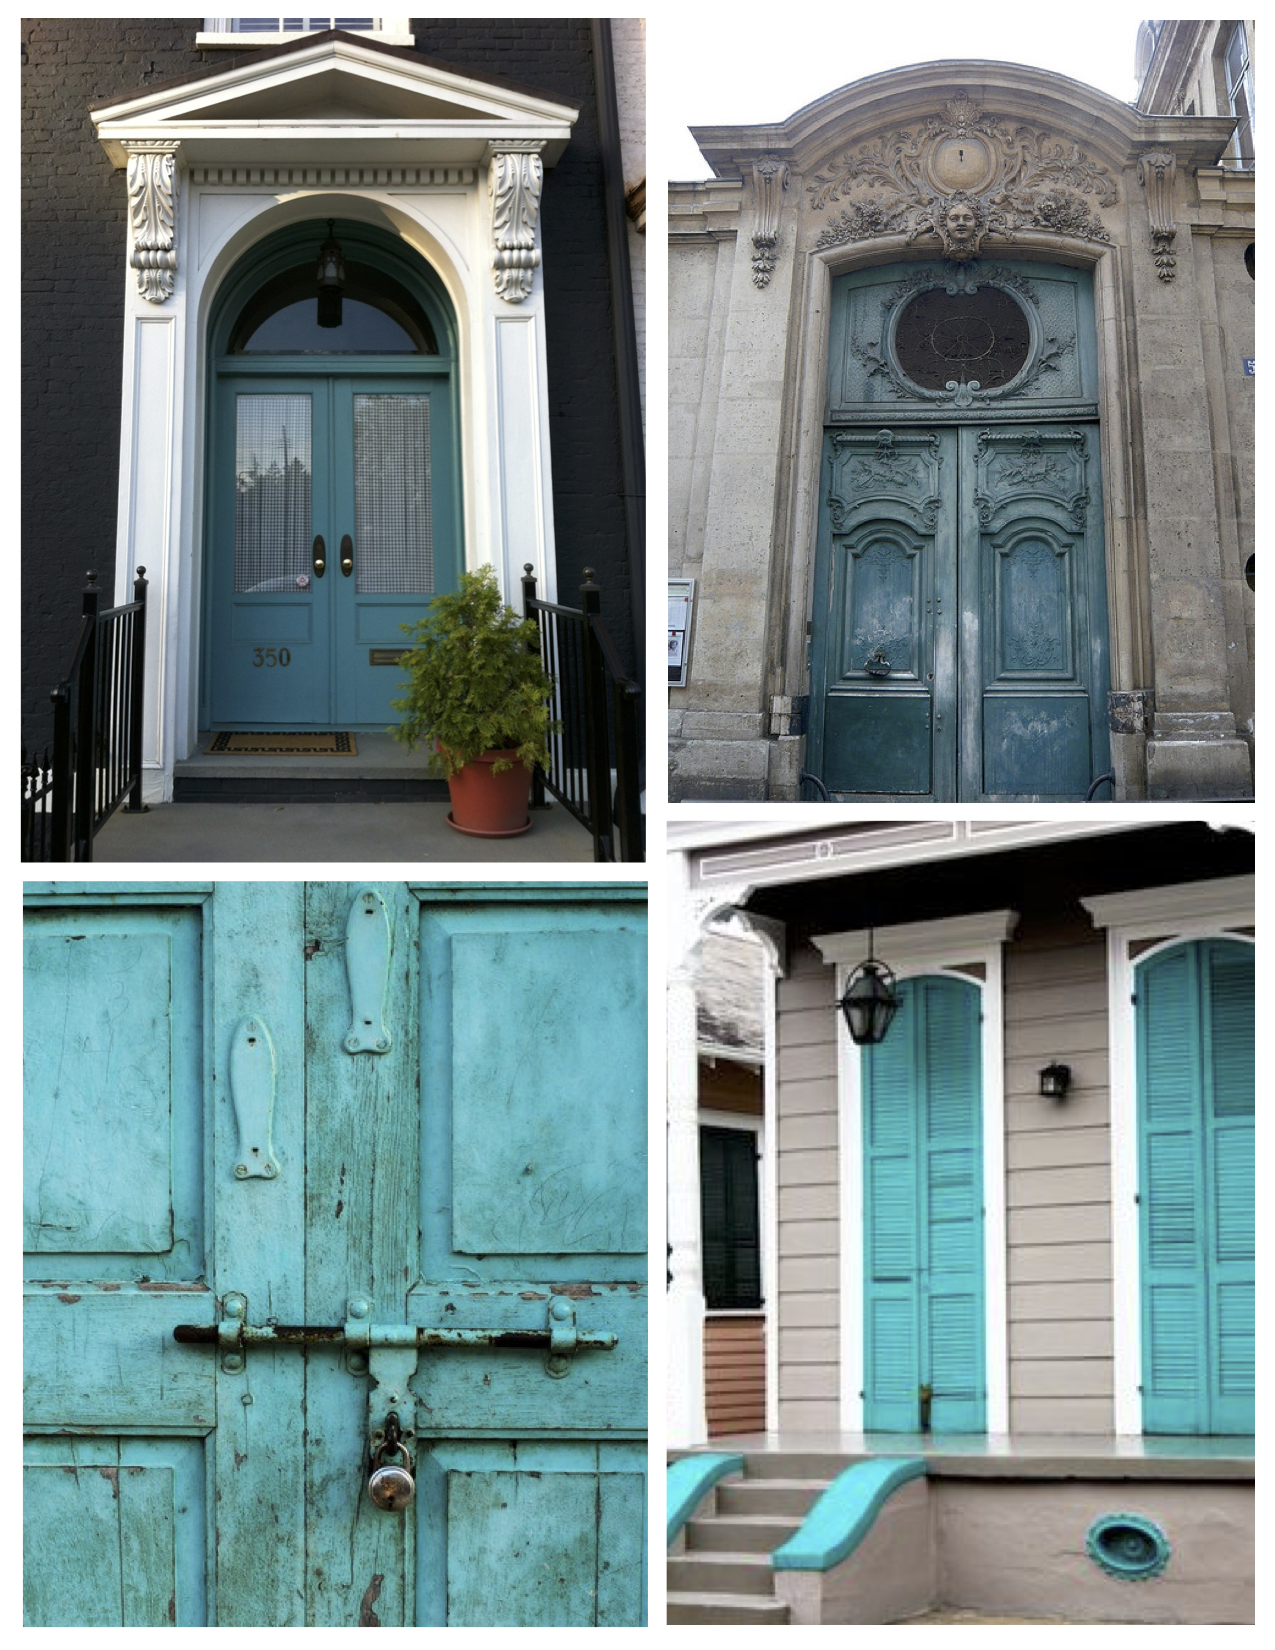 Refreshing Delight: Tranquil Turquoise Coating The Exterior Entry